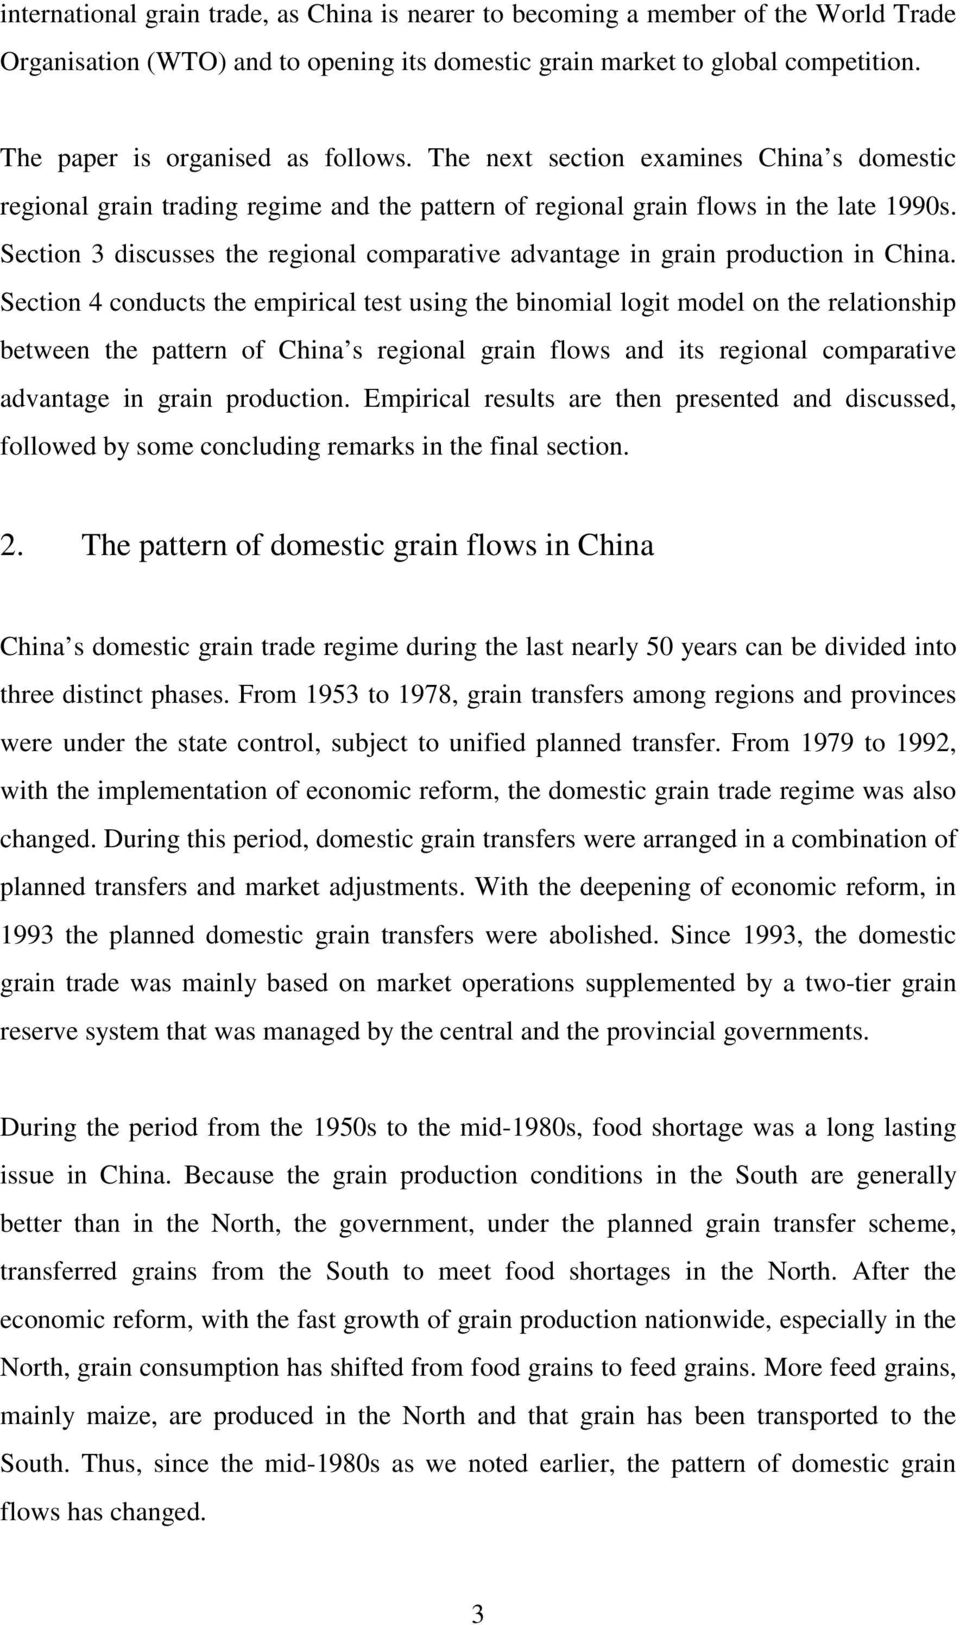 Section 3 discusses the regional comparative advantage in grain production in China.